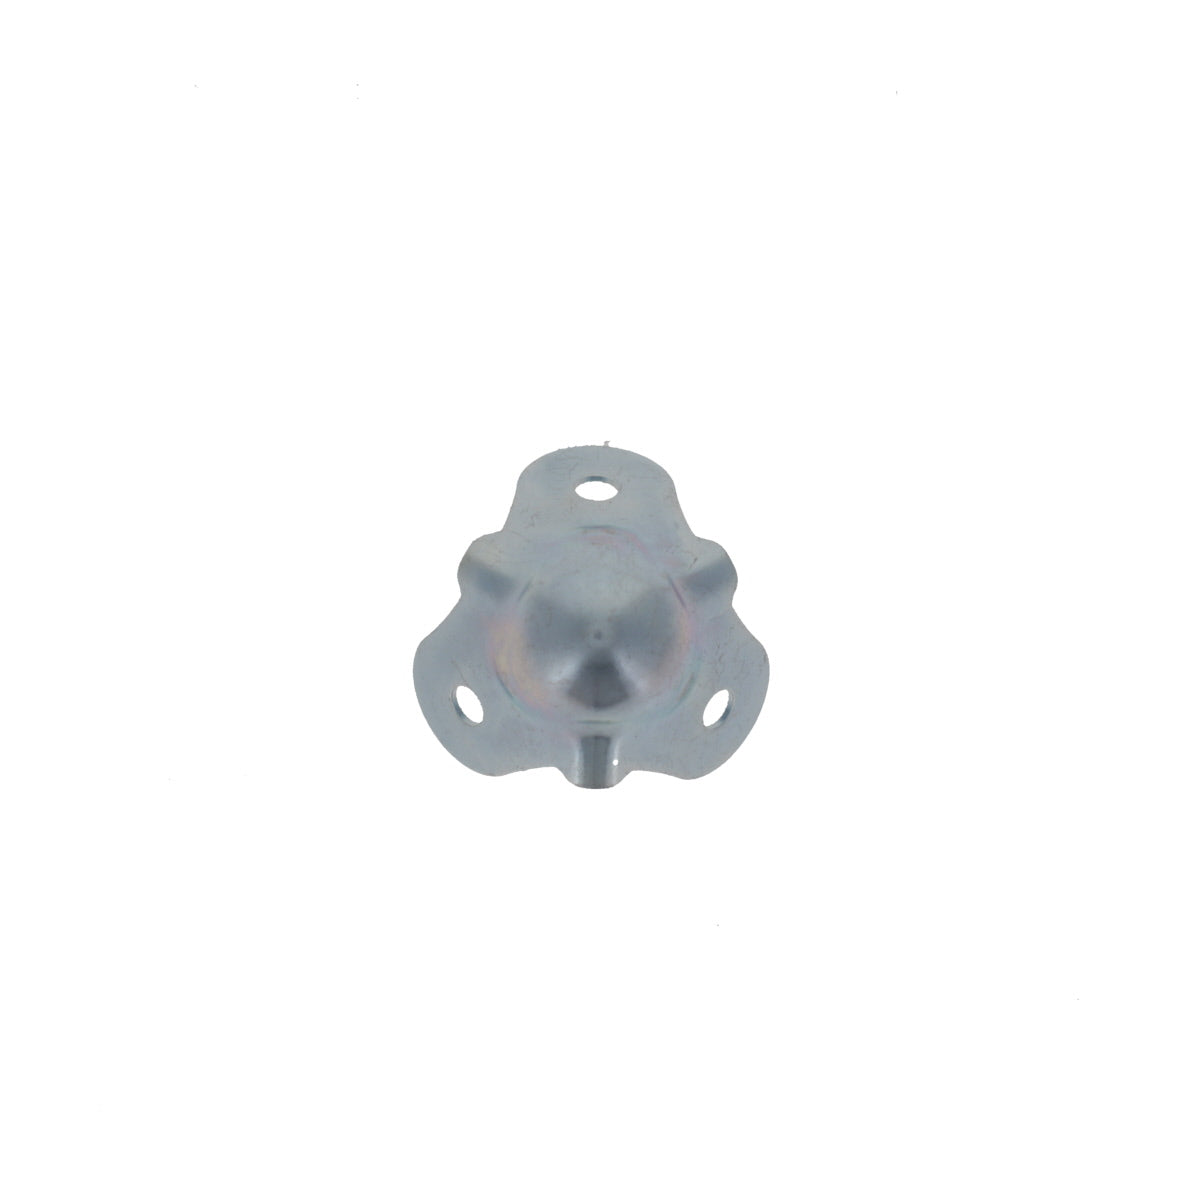 Small Light Duty Ball Corner - 20ga Steel Zinc Plated, Front View